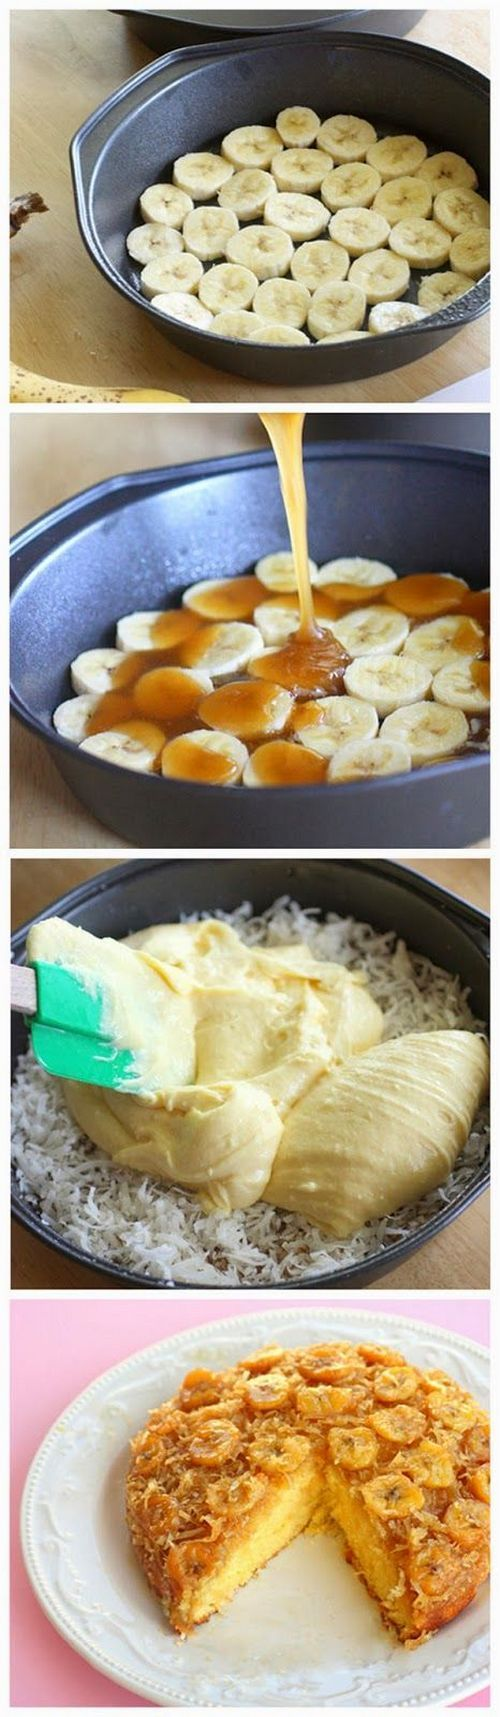 This easy to make Banana Coconut Upside Down Cake is ooey gooey and delicious. Make it for dessert or even brunch!